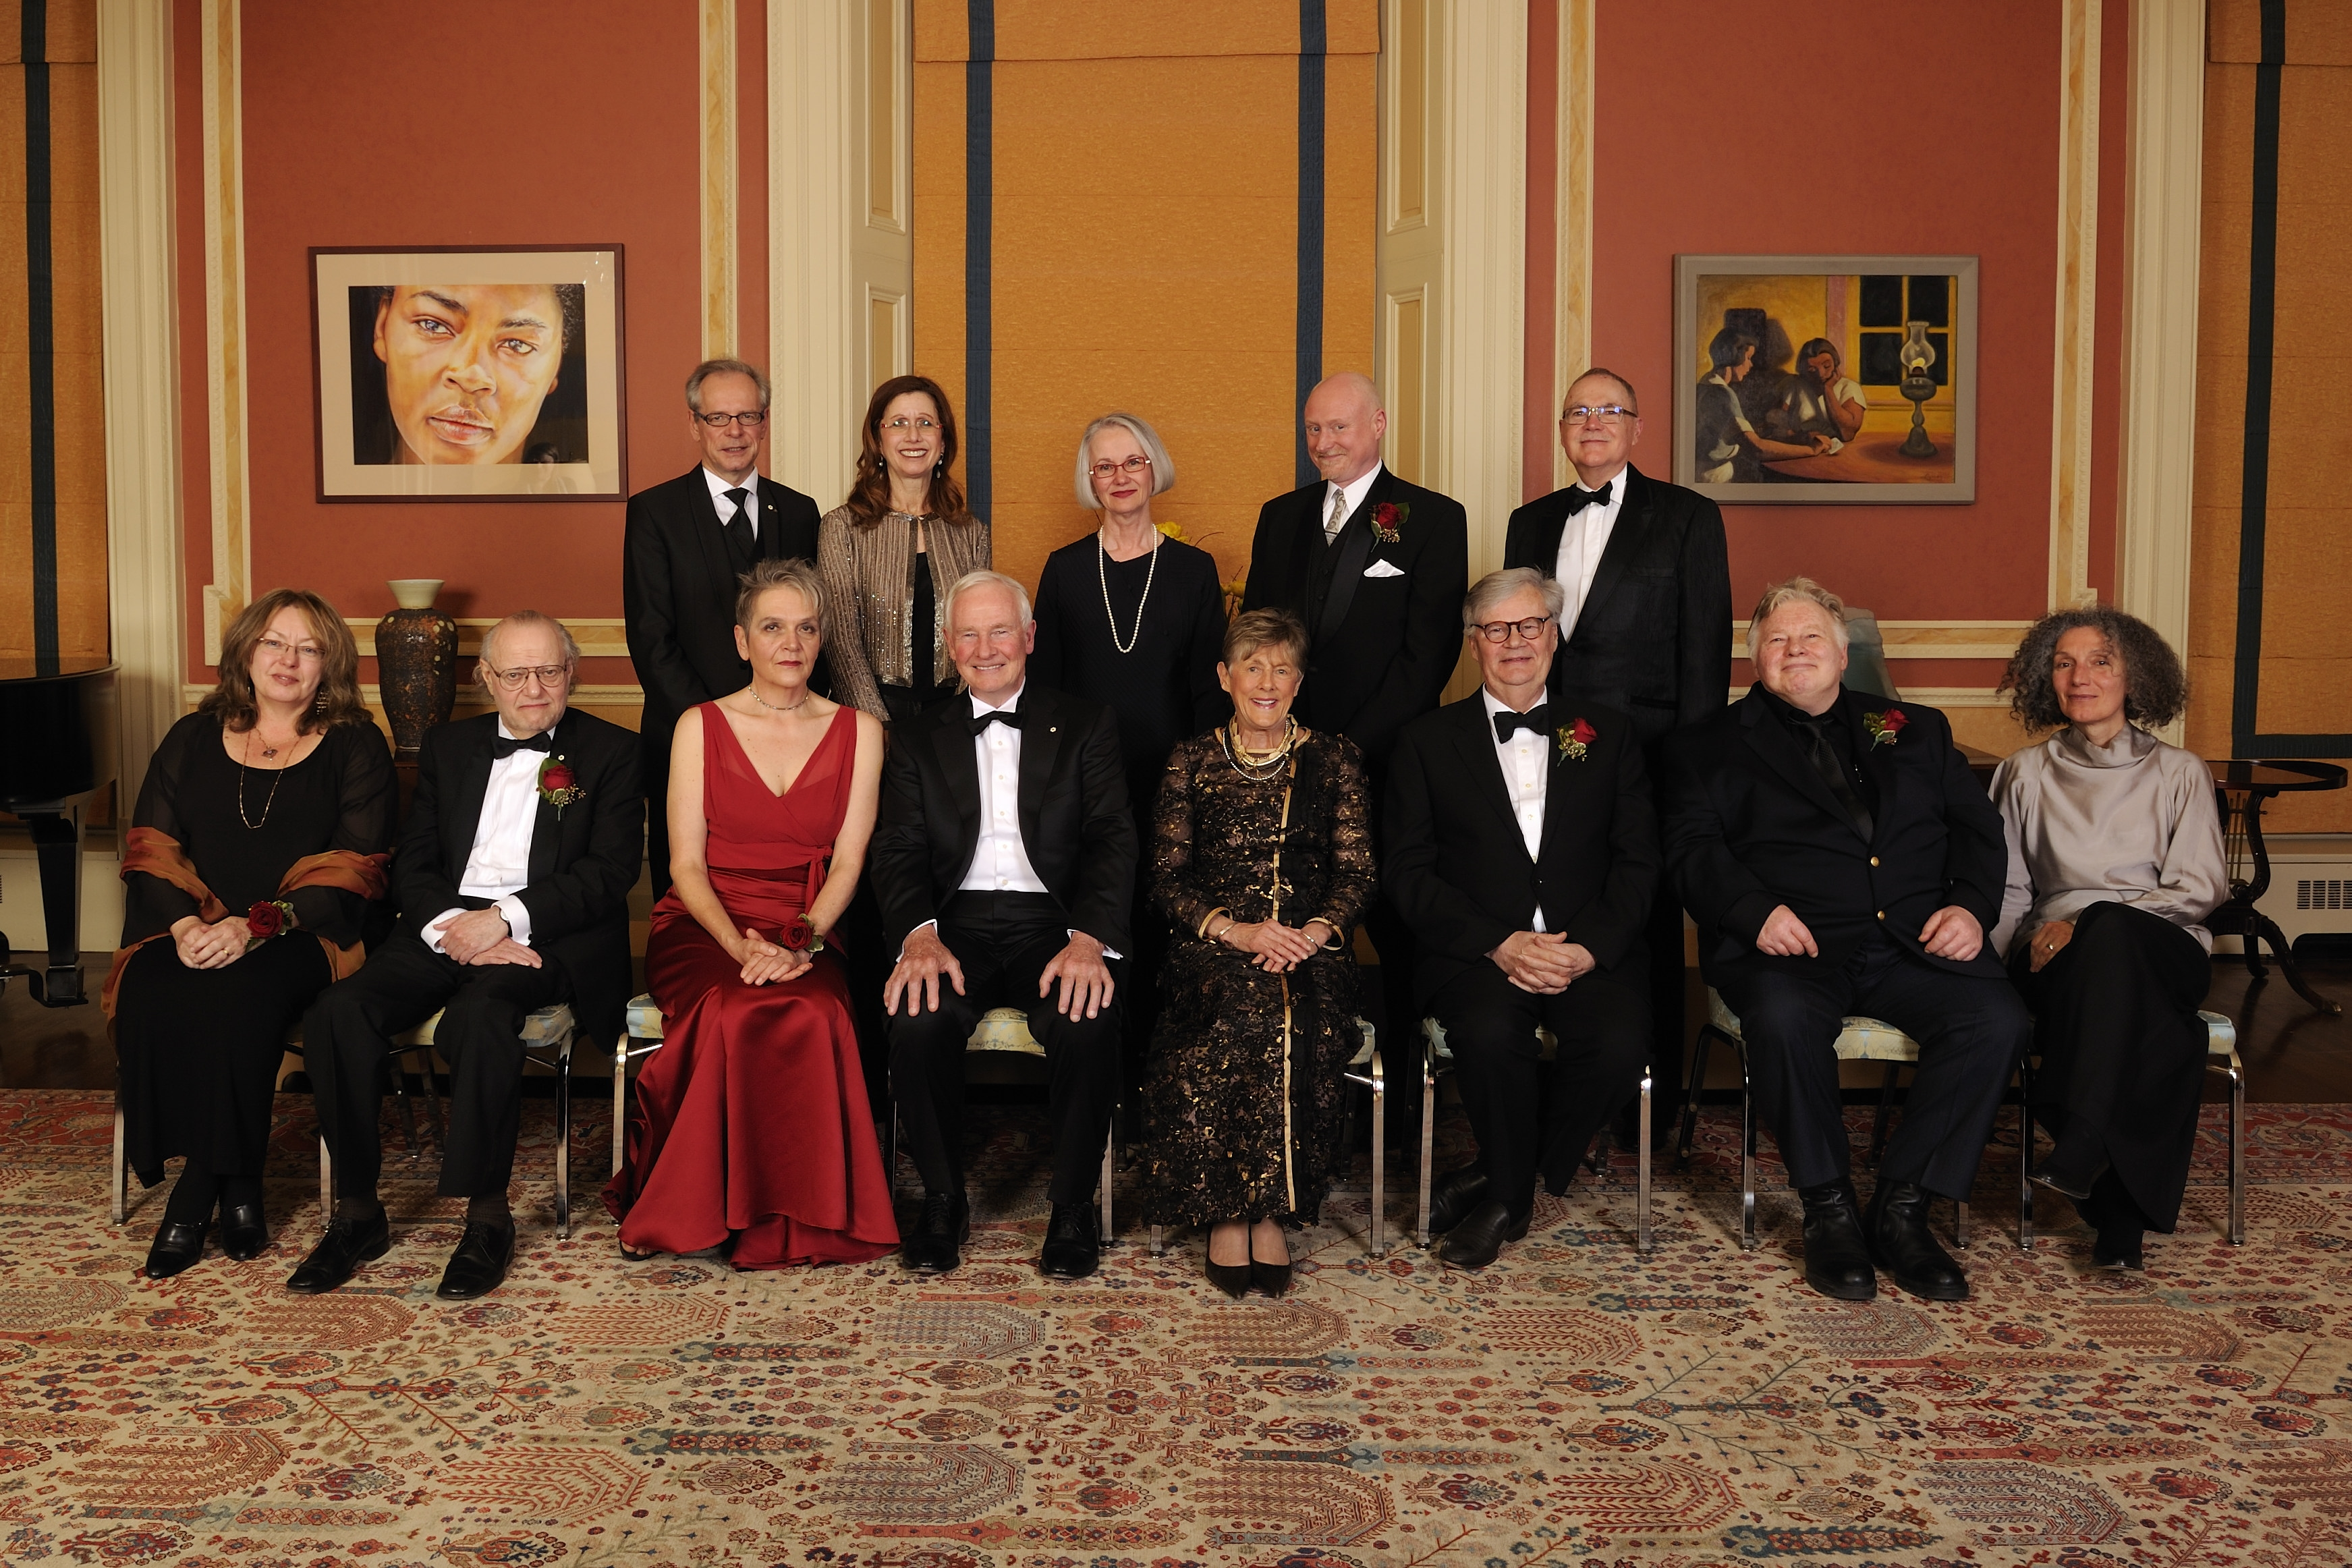 Official photo of Their Excellencies with the laureates of the 2012 Governor General's Awards in Visual and Media Arts.